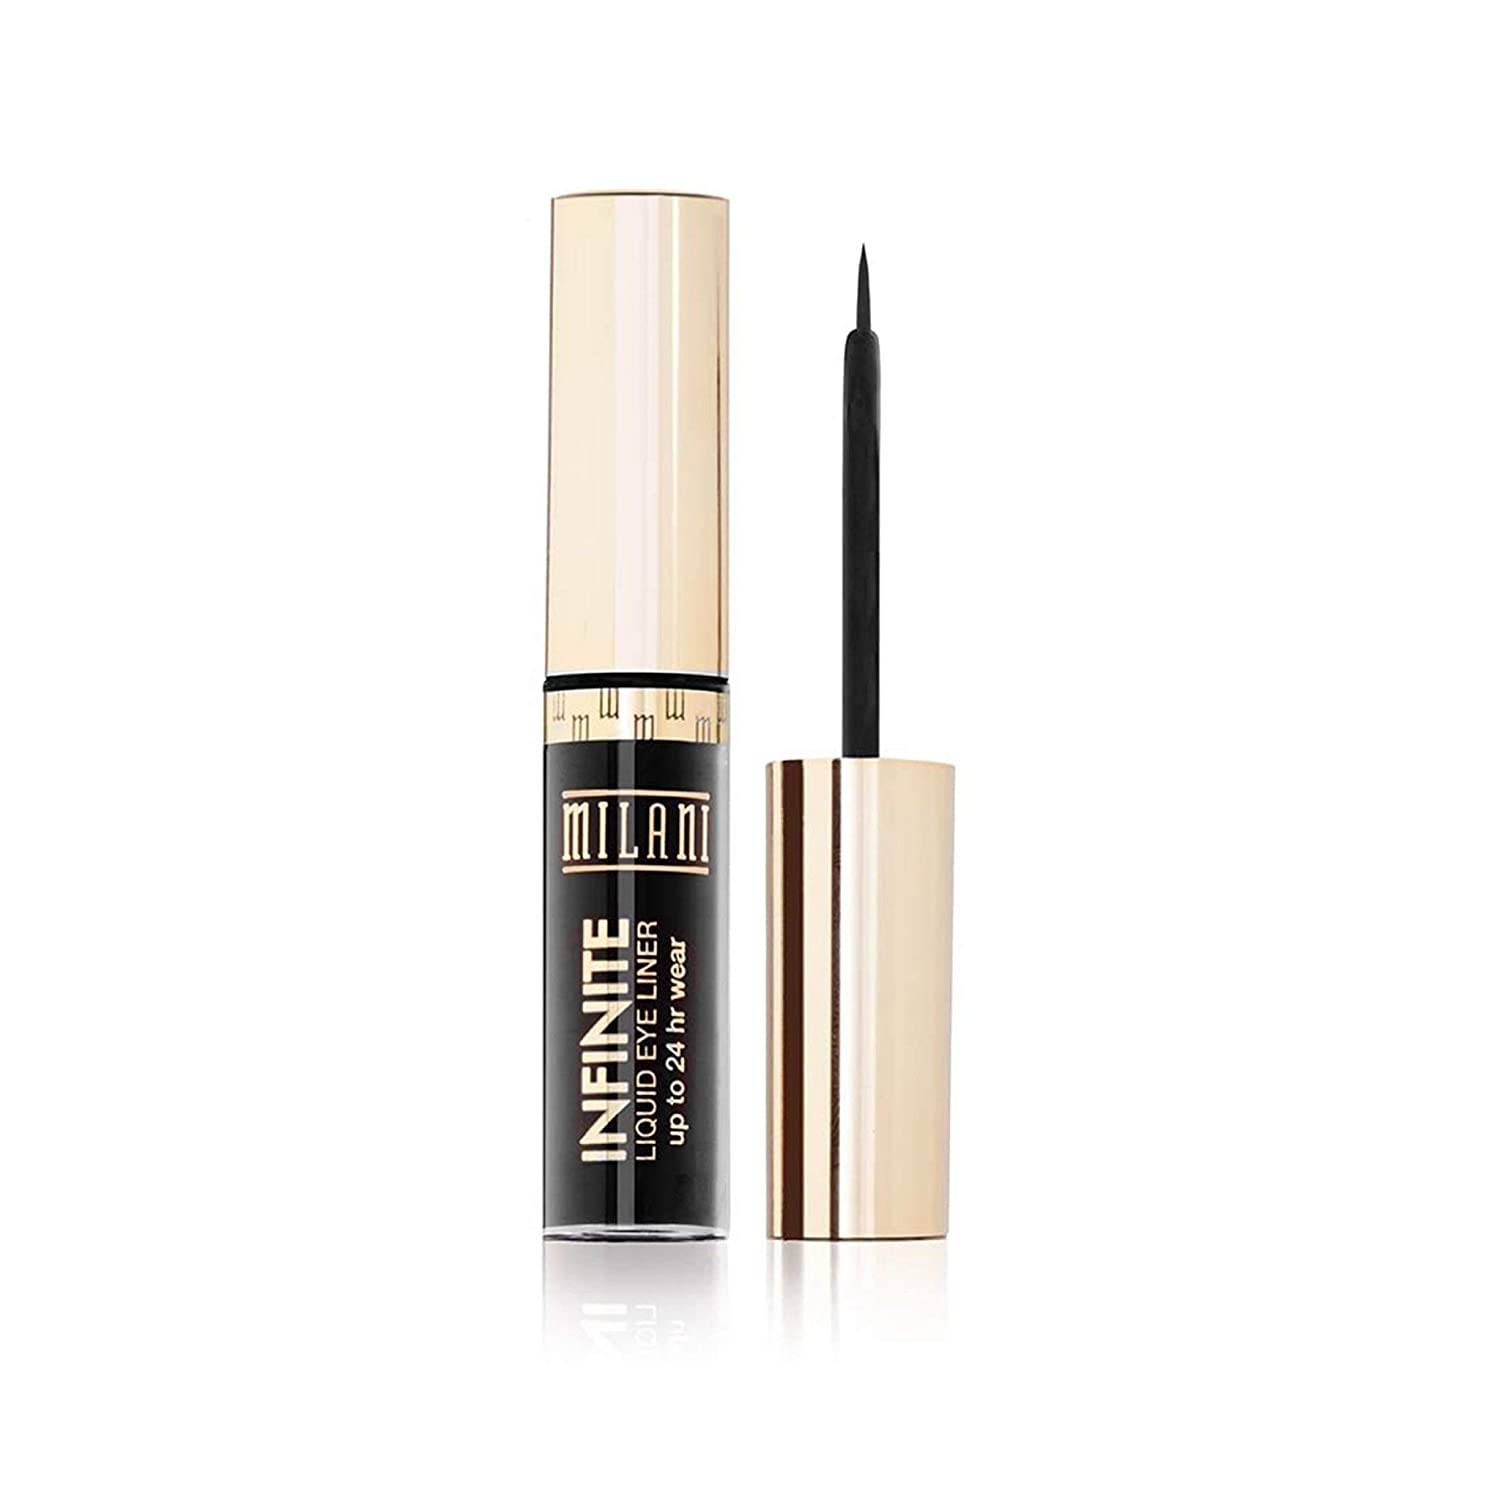 Milani Infinite Liquid Eyeliner - Everlast (0.17 Fl. Oz.) Vegan, Cruelty-Free Liquid Eyeliner to Define & Intensify Eyes for Up to 24 Hours